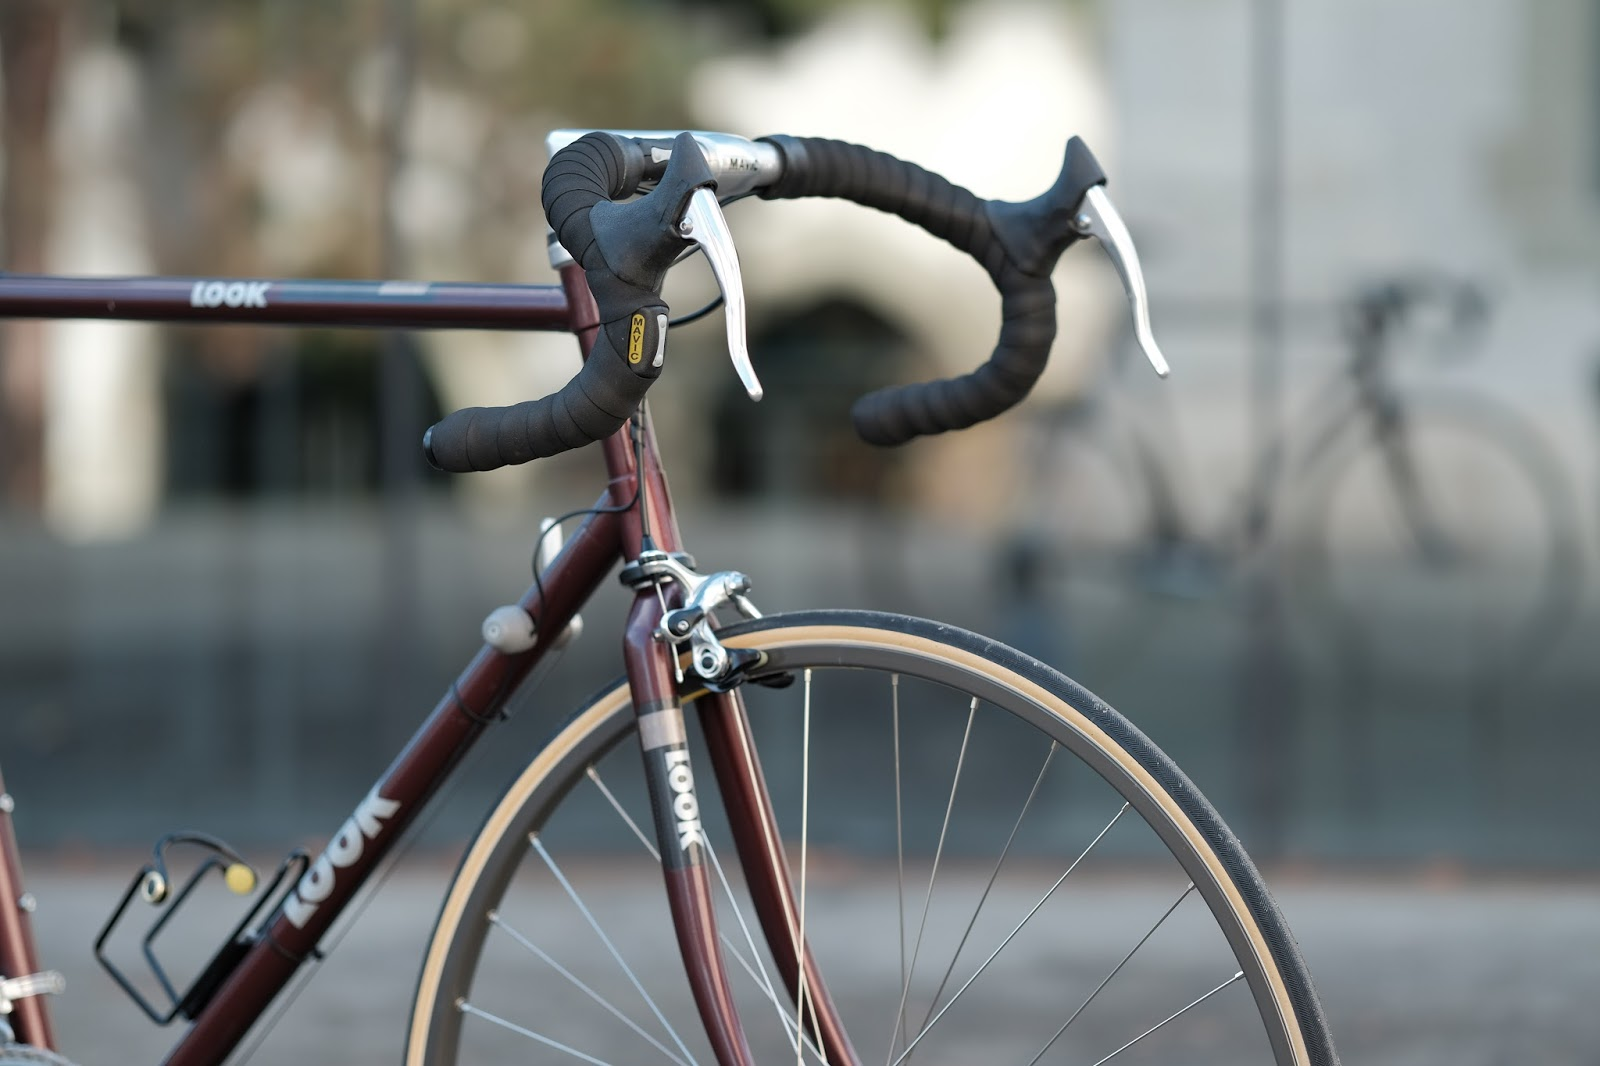 carbon road frame and electronic gear shifting from 1992